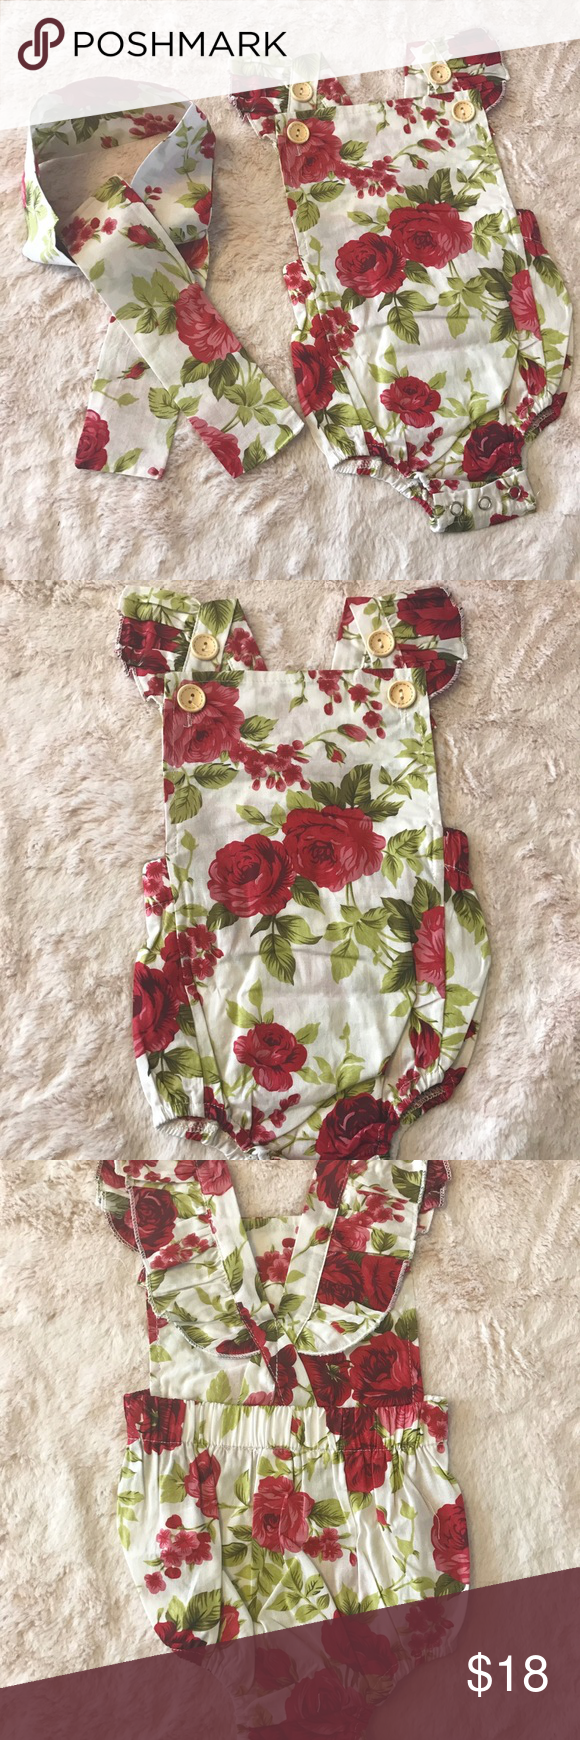 b739bc87af51 Baby Girl Jumper Romper Extremely cute romper with headband. Beautiful rose  pattern